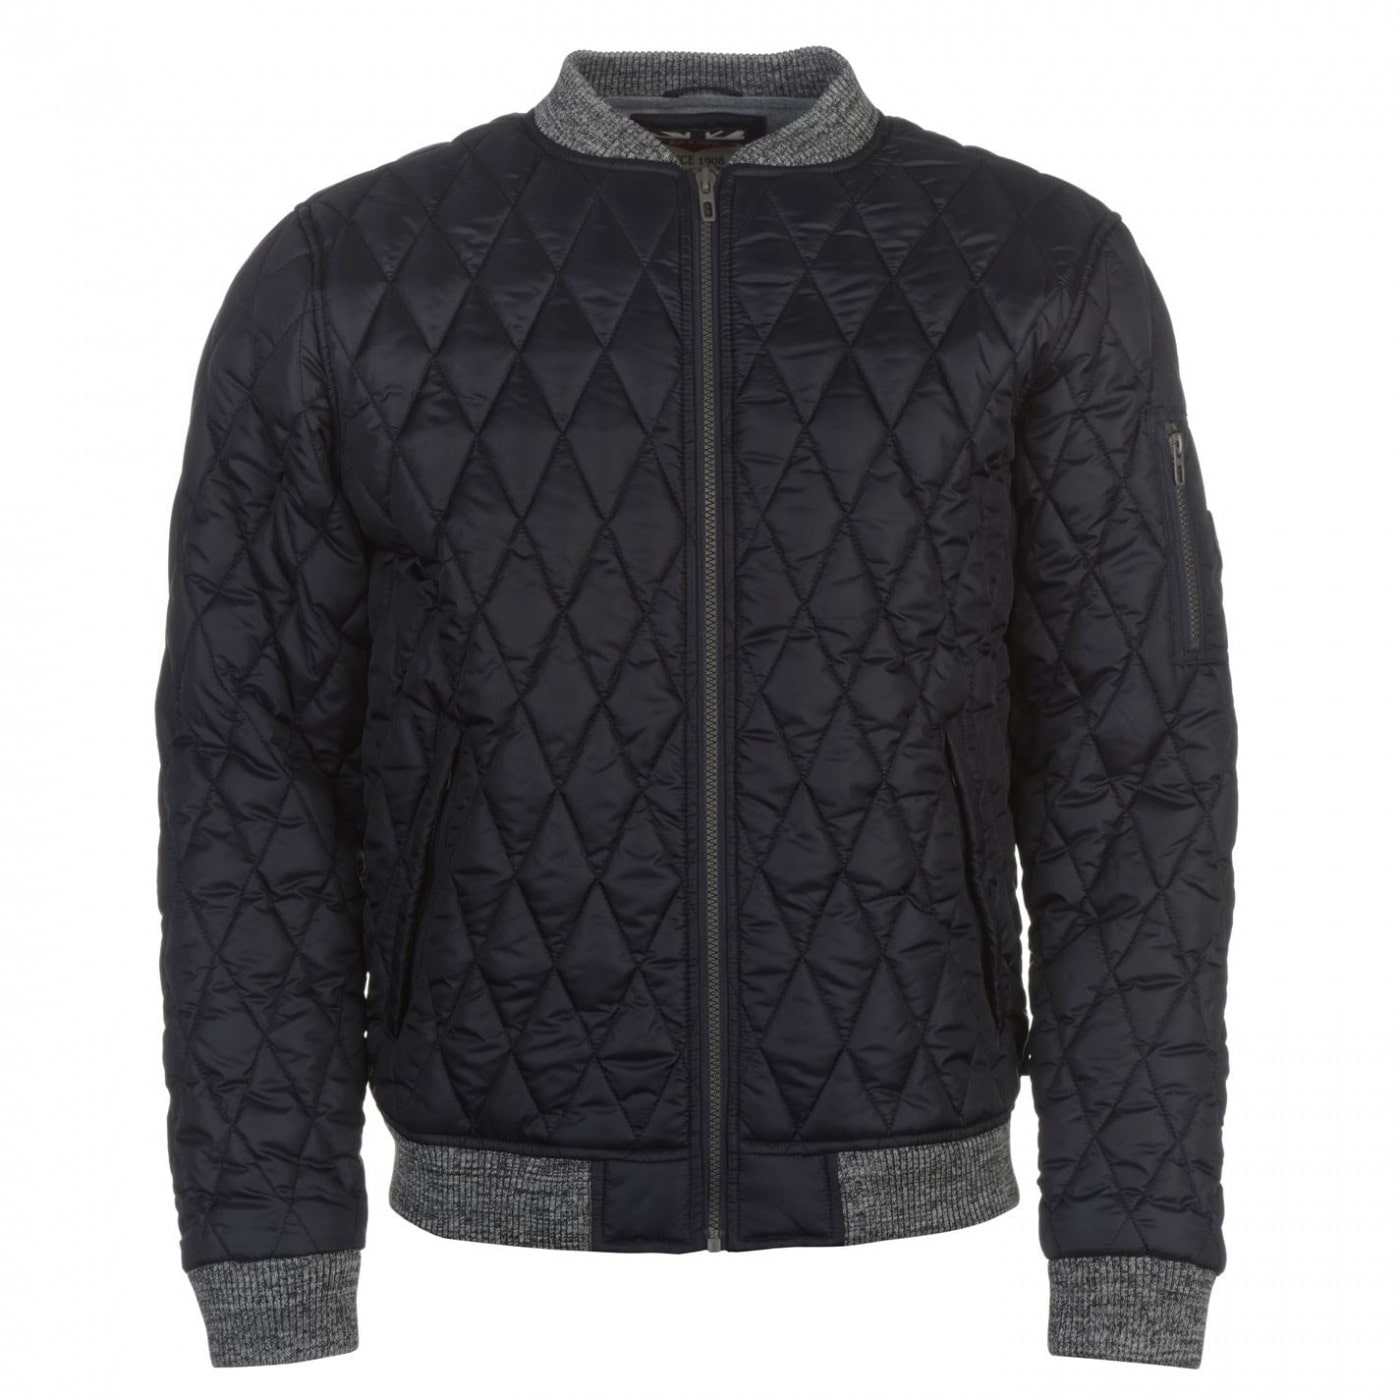 3a7df43cd8b20 Lee Cooper Quilted Bomber Jacket Mens - FACTCOOL